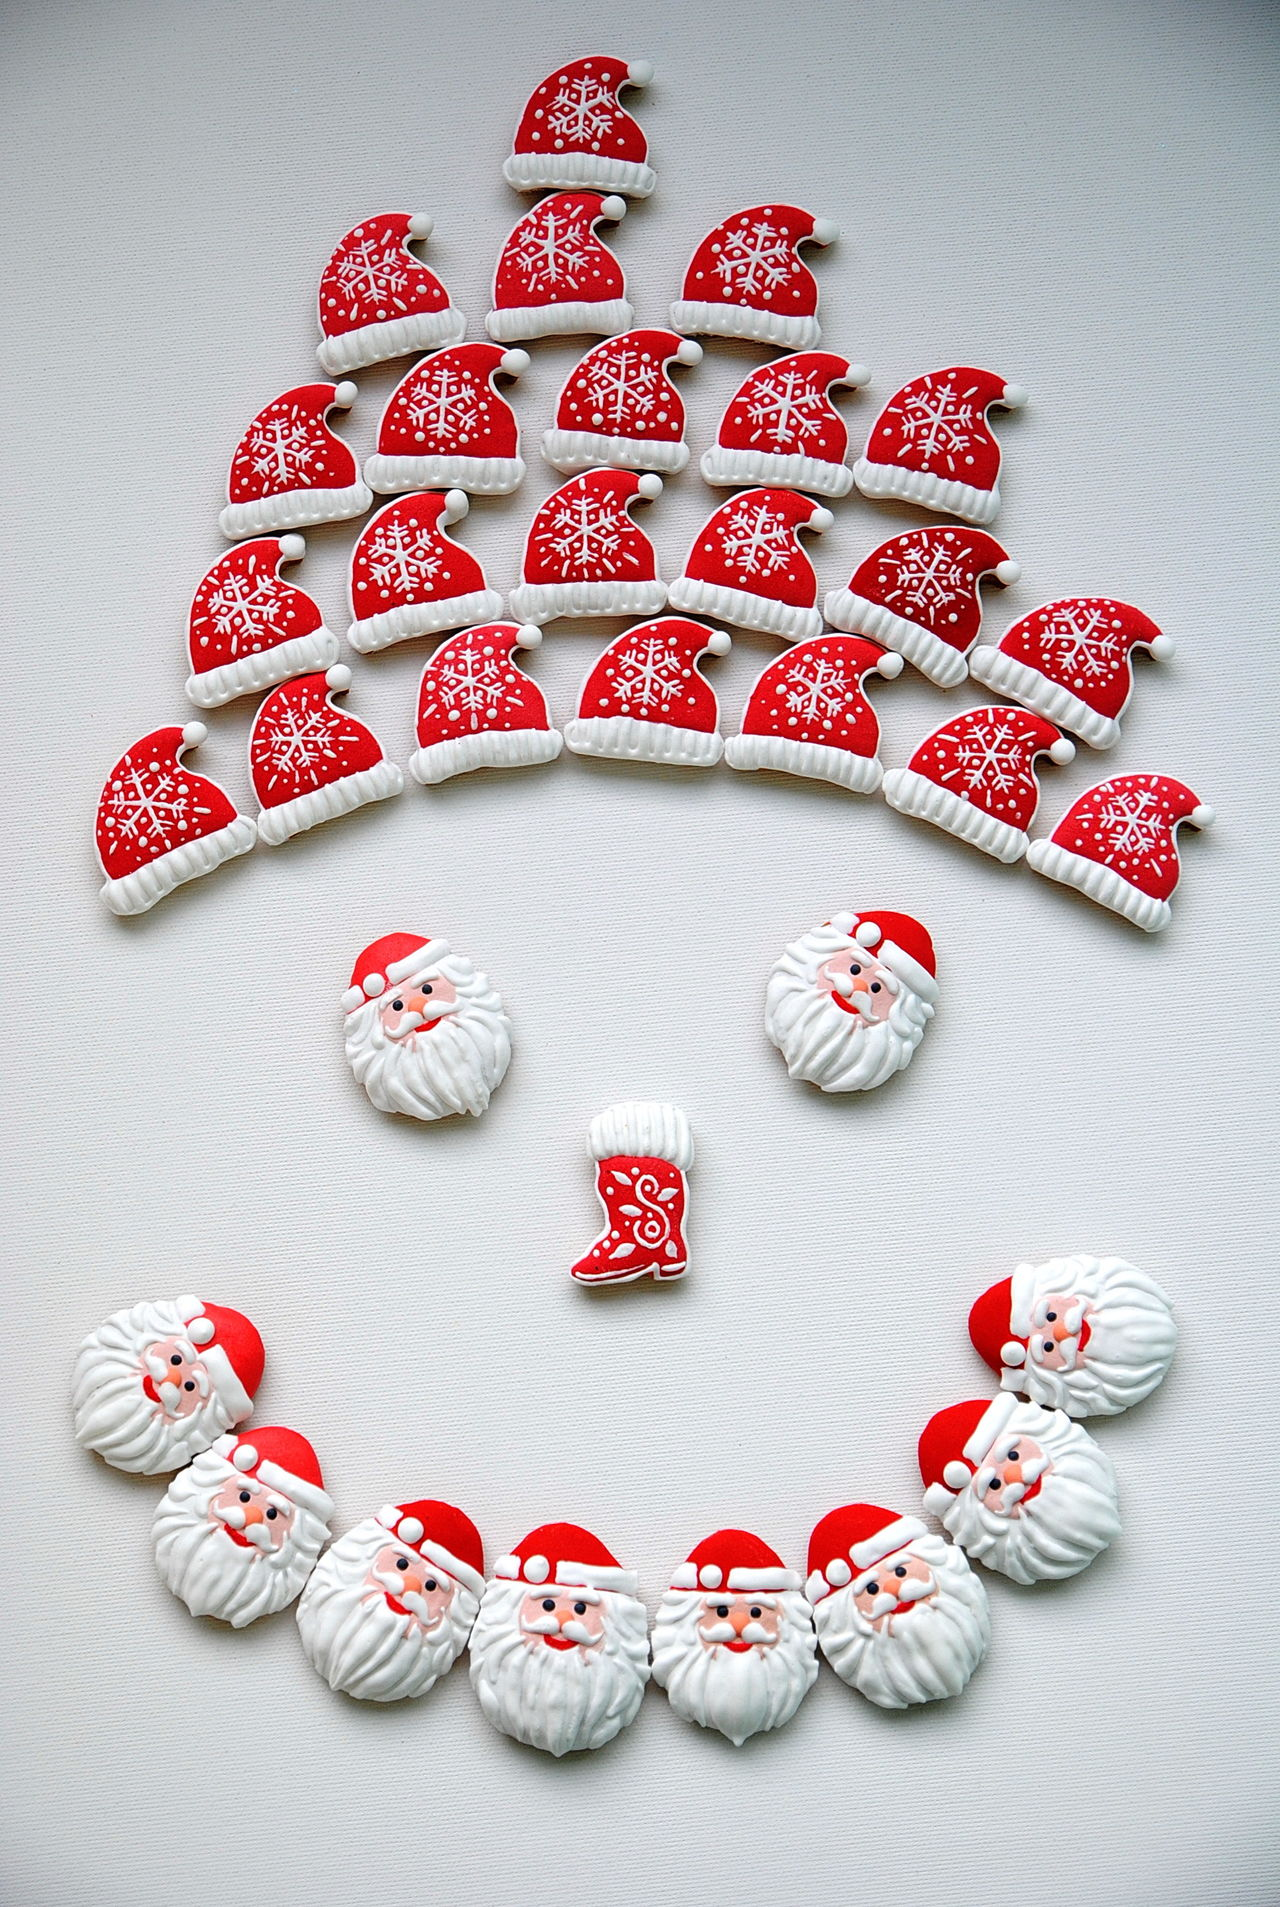 smilling face Celebration Christmas Around The World Christmas Collection Christmas Decorations Close-up COOKIES! Creativity Day Directly Above Indoors  Large Group Of Objects Love Merry Christmas! New Year Around The World No People Red Santa Claus Santa Claus Gingerbread Collection Smile Snowman Snowman Face Snowman Smile Studio Shot Sweet Food